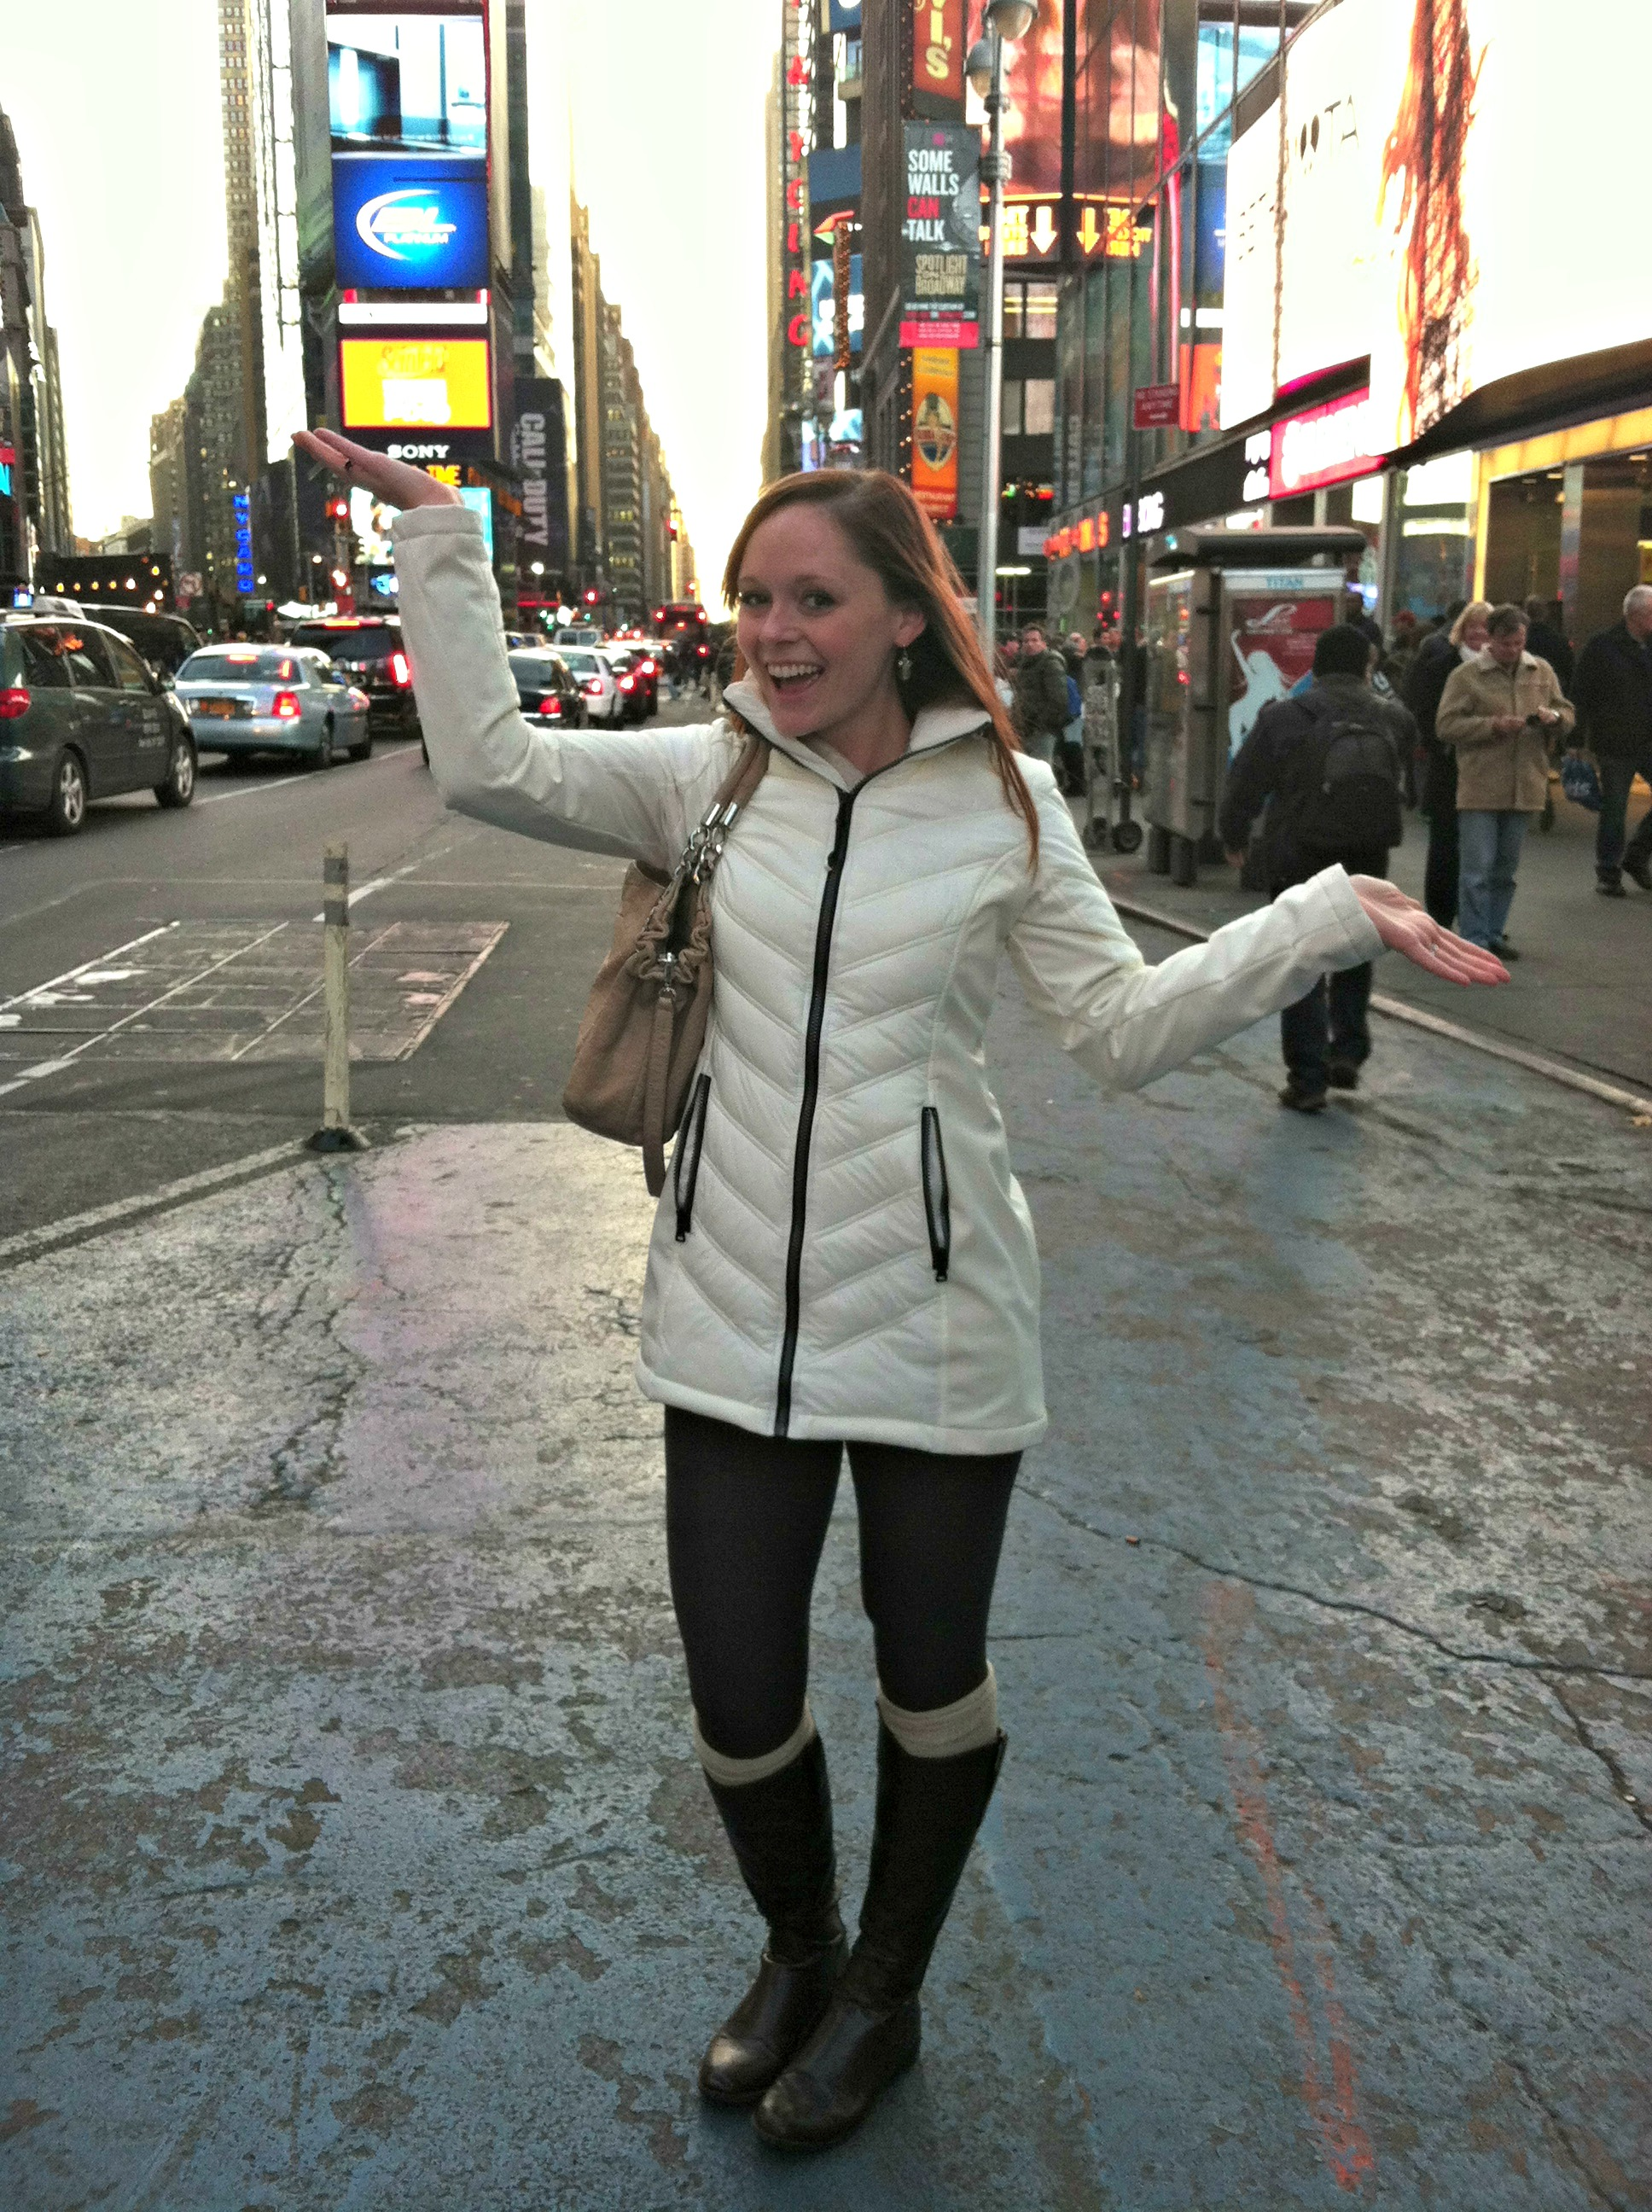 Kelly Times Square